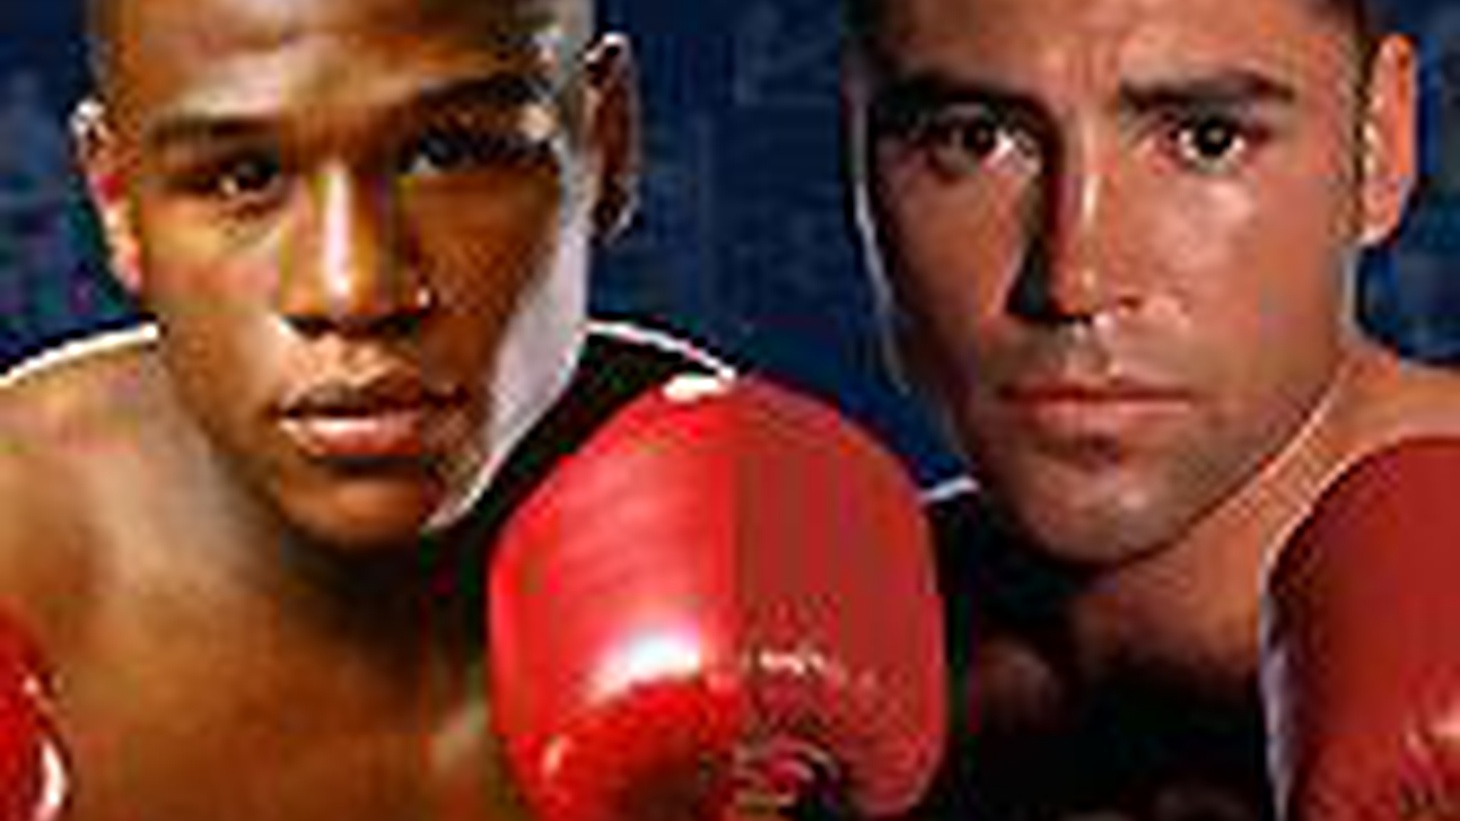 Count me among the masses who used to be ardent fight fans. Until maybe 15, 20 years ago, we used to get up for at least two, if not three or four marquis matches every year. My buddies and I would get excited for weeks before a Hagler/Hearns or a Leonard/Duran bout. We'd get into Vegas or Atlantic City or New Orleans, wherever, a couple of days before the fight and ride the adrenaline wave as time for the opening bell grew near. It was fun to analyze and argue the merits of the two fighters, even more fun to lay a wager on the outcome. You felt you followed the sport so closely day to day that you had a highly educated guess as to how the match would unfold. And yet you knew you had no idea what would transpire in the ring. That's the beauty of boxing, when it's right...